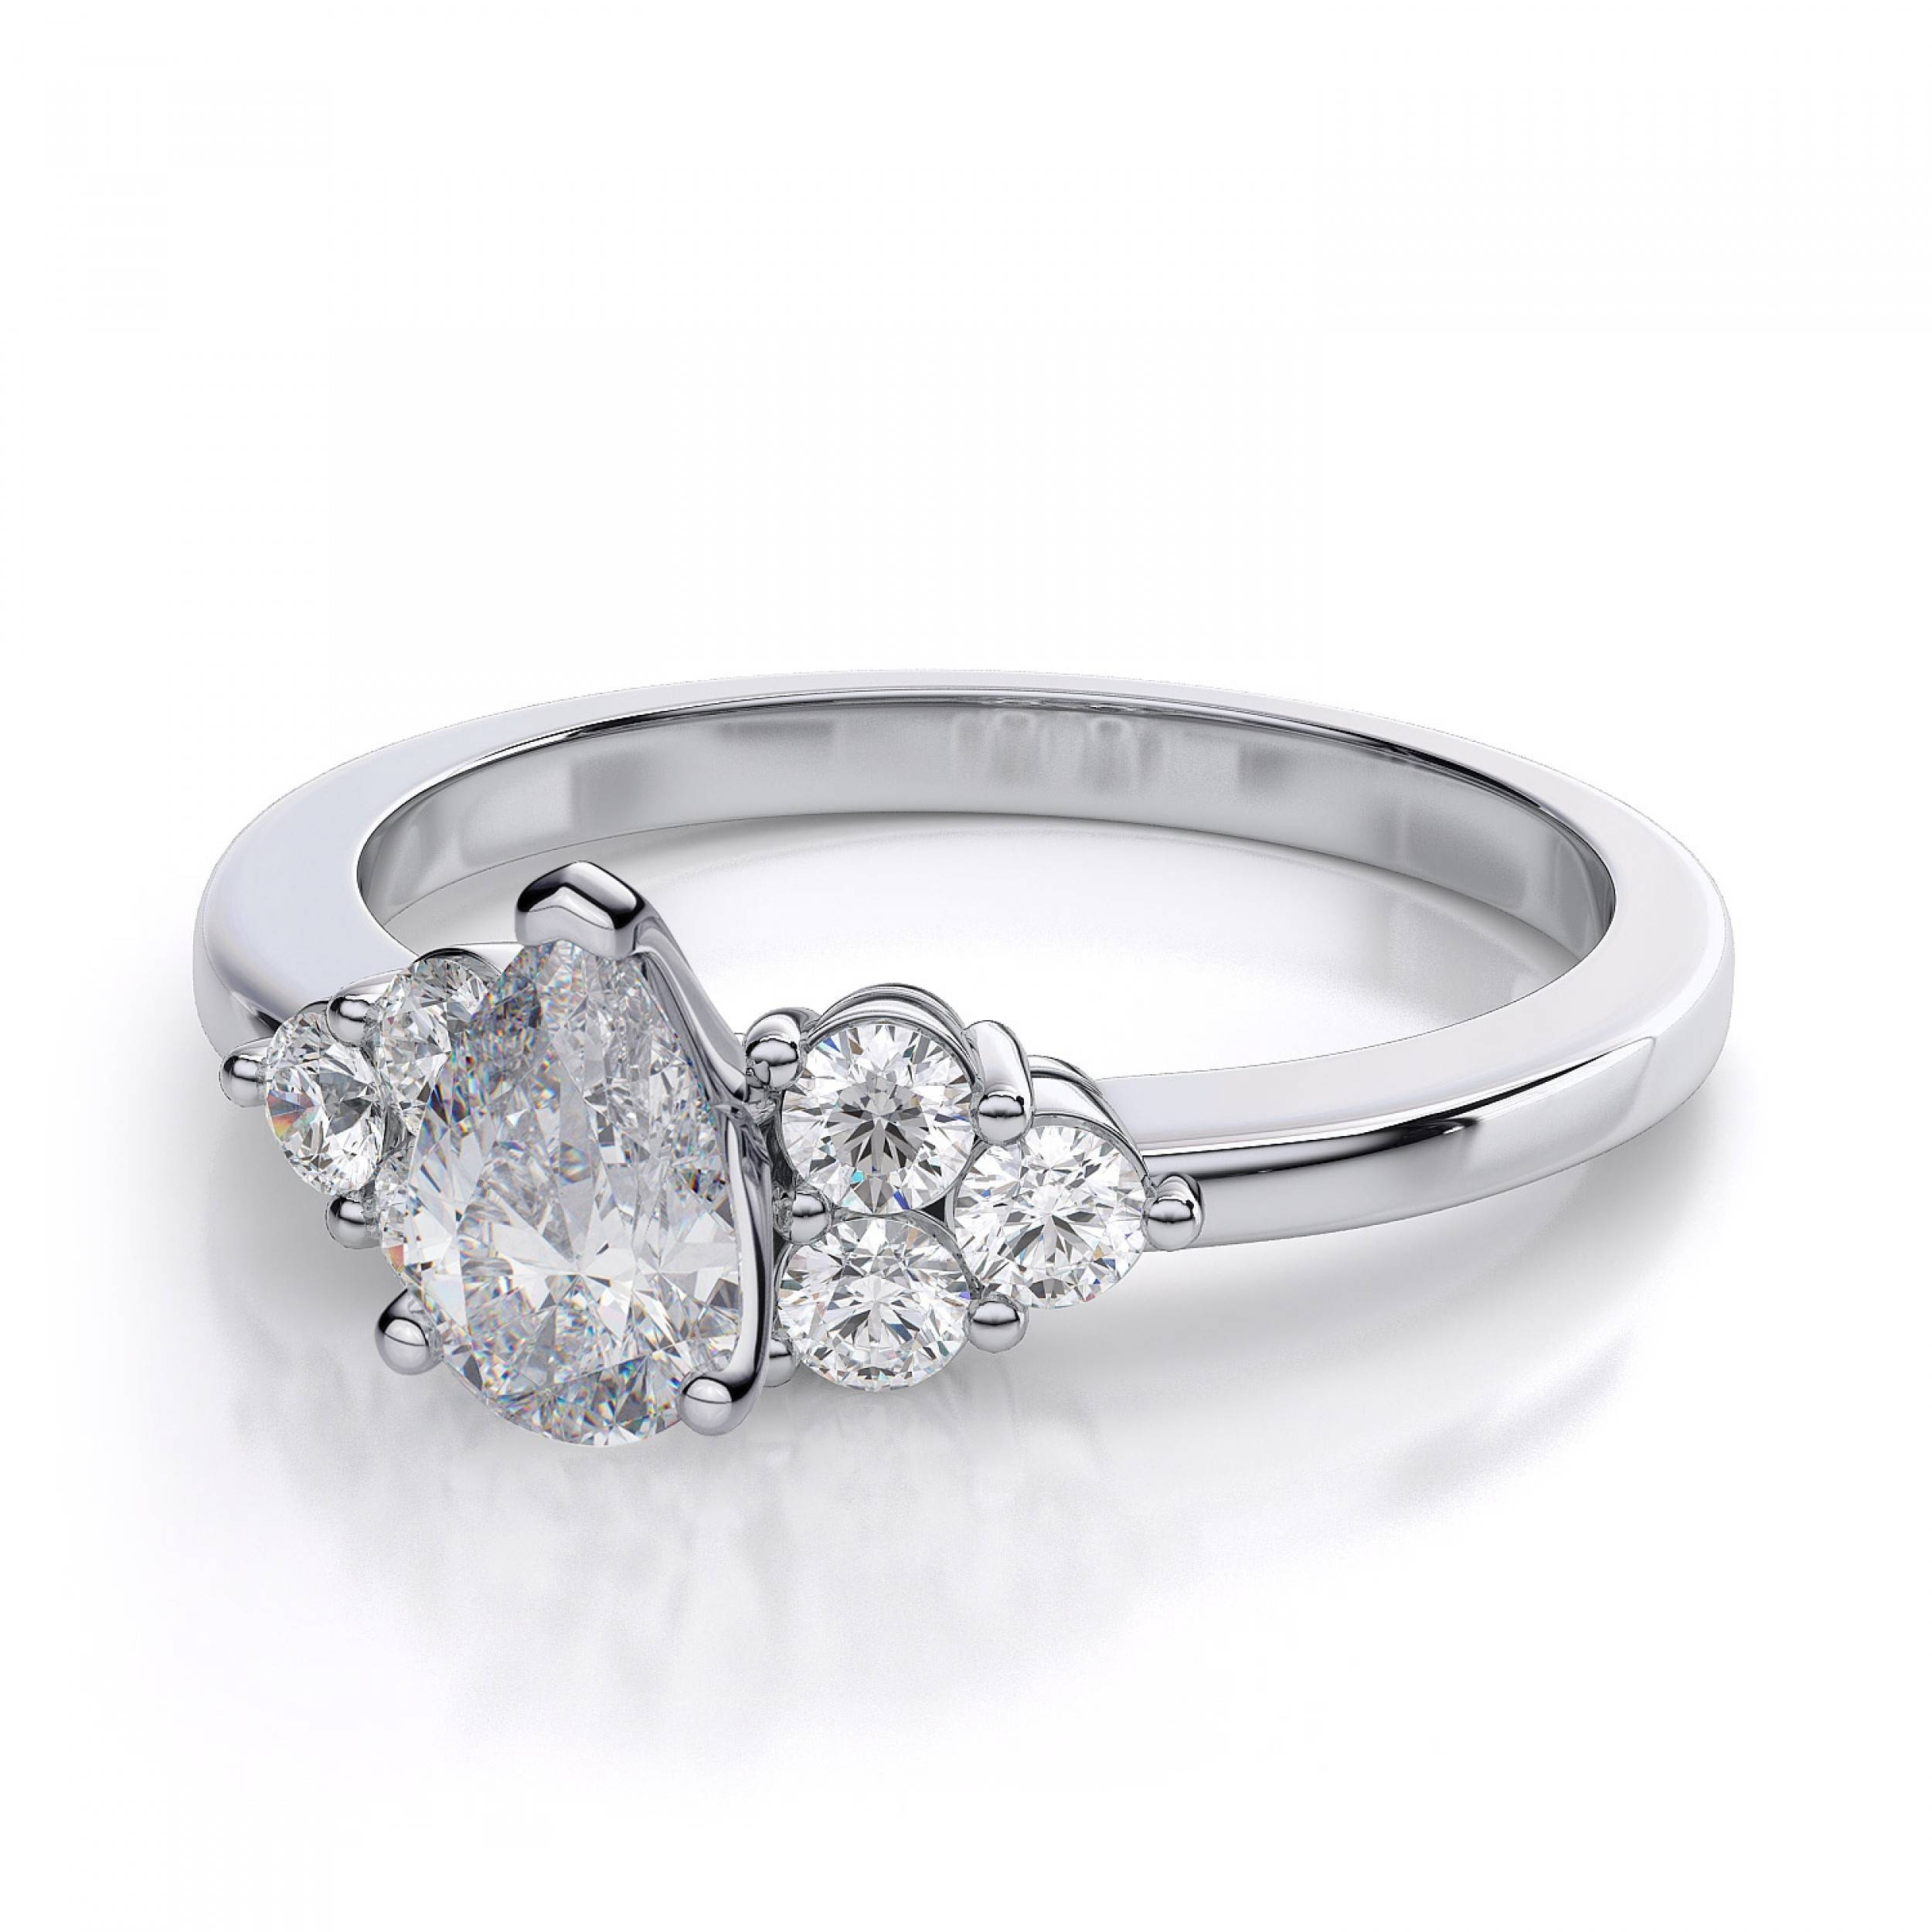 30Ctw Cluster Pear Shaped Sidestones Engagement Ring Setting In Pertaining To Pear Shaped Diamond Settings Engagement Rings (View 4 of 15)